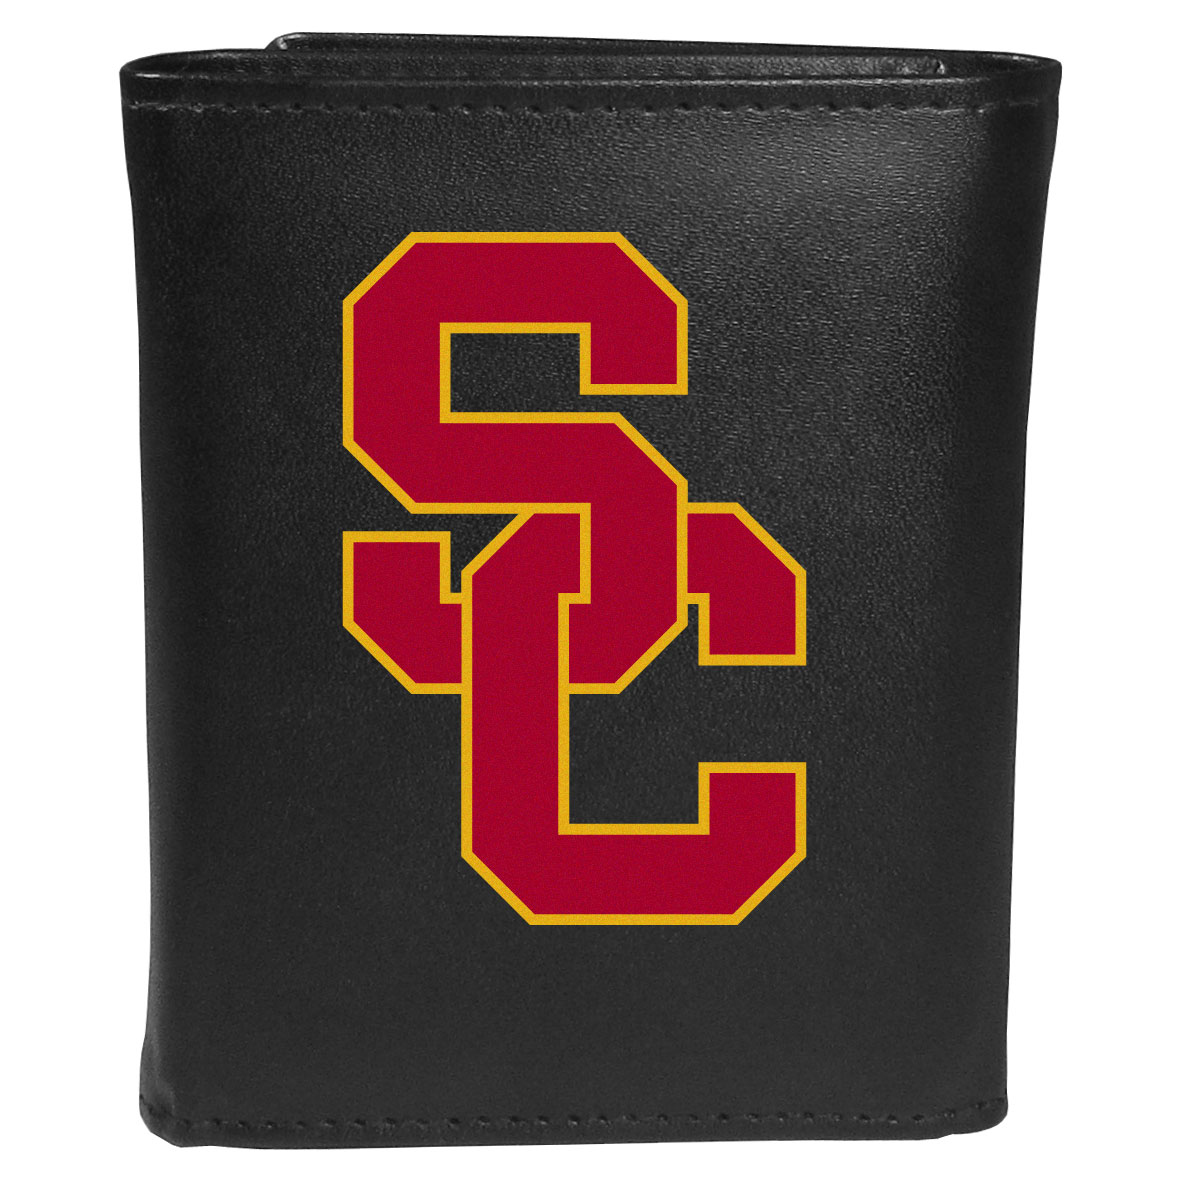 USC Trojans Leather Tri-fold Wallet, Large Logo - Our classic fine leather tri-fold wallet is meticulously crafted with genuine leather that will age beautifully so you will have a quality wallet for years to come. This is fan apparel at its finest. The wallet is packed with organizational  features; lots of credit card slots, large billfold pocket, and a window ID slot. The front of the wallet features an extra large USC Trojans printed logo.